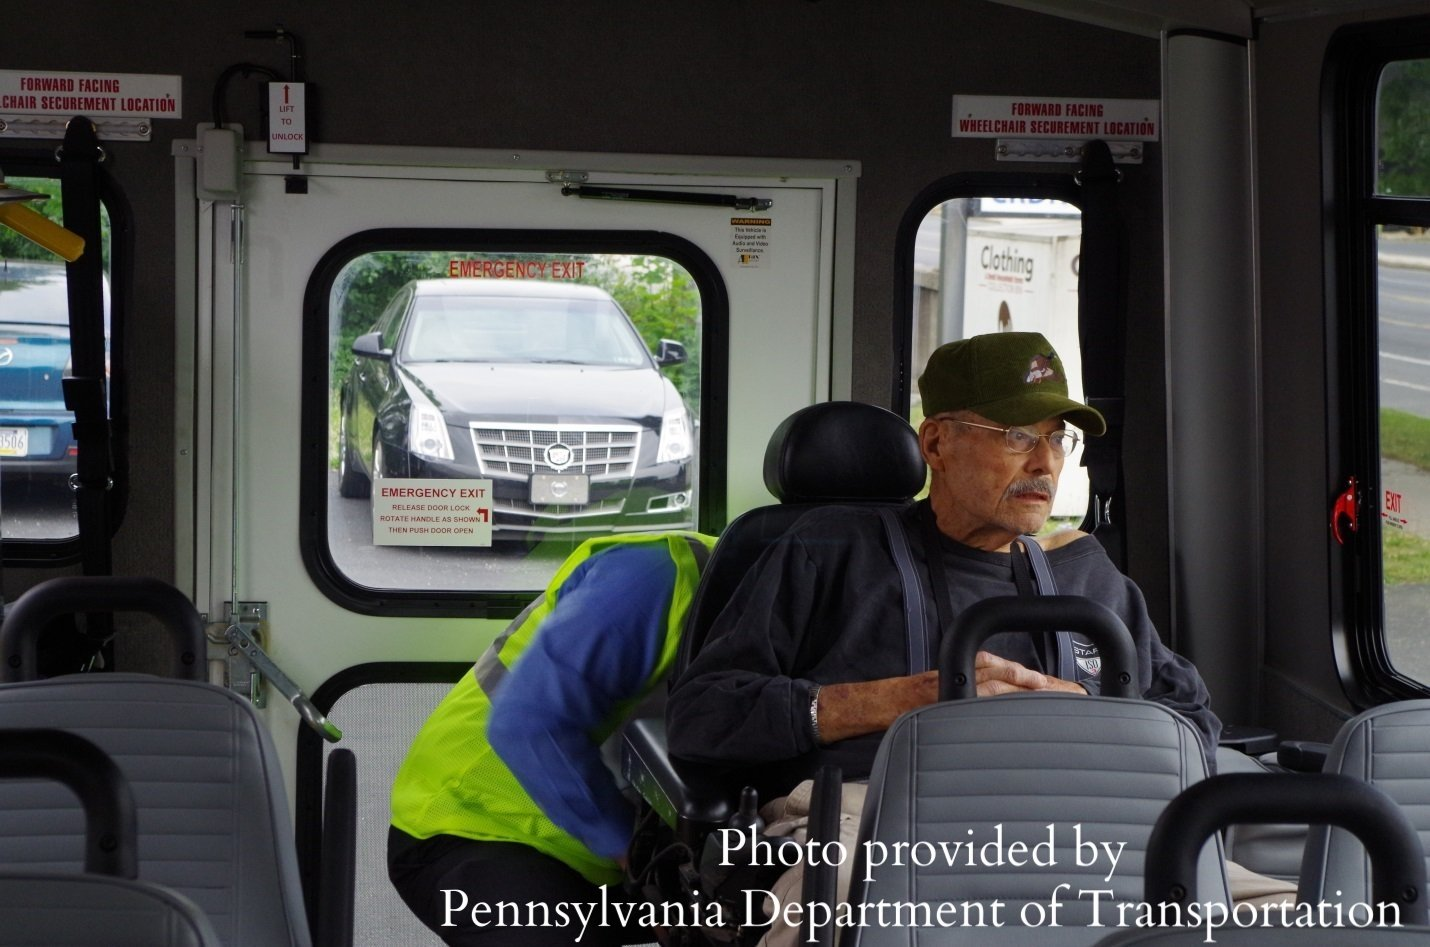 ECOLANE AND PennDOT COMPLETE SOFTWARE IMPLEMENTATION ACROSS PENNSYLVANIA